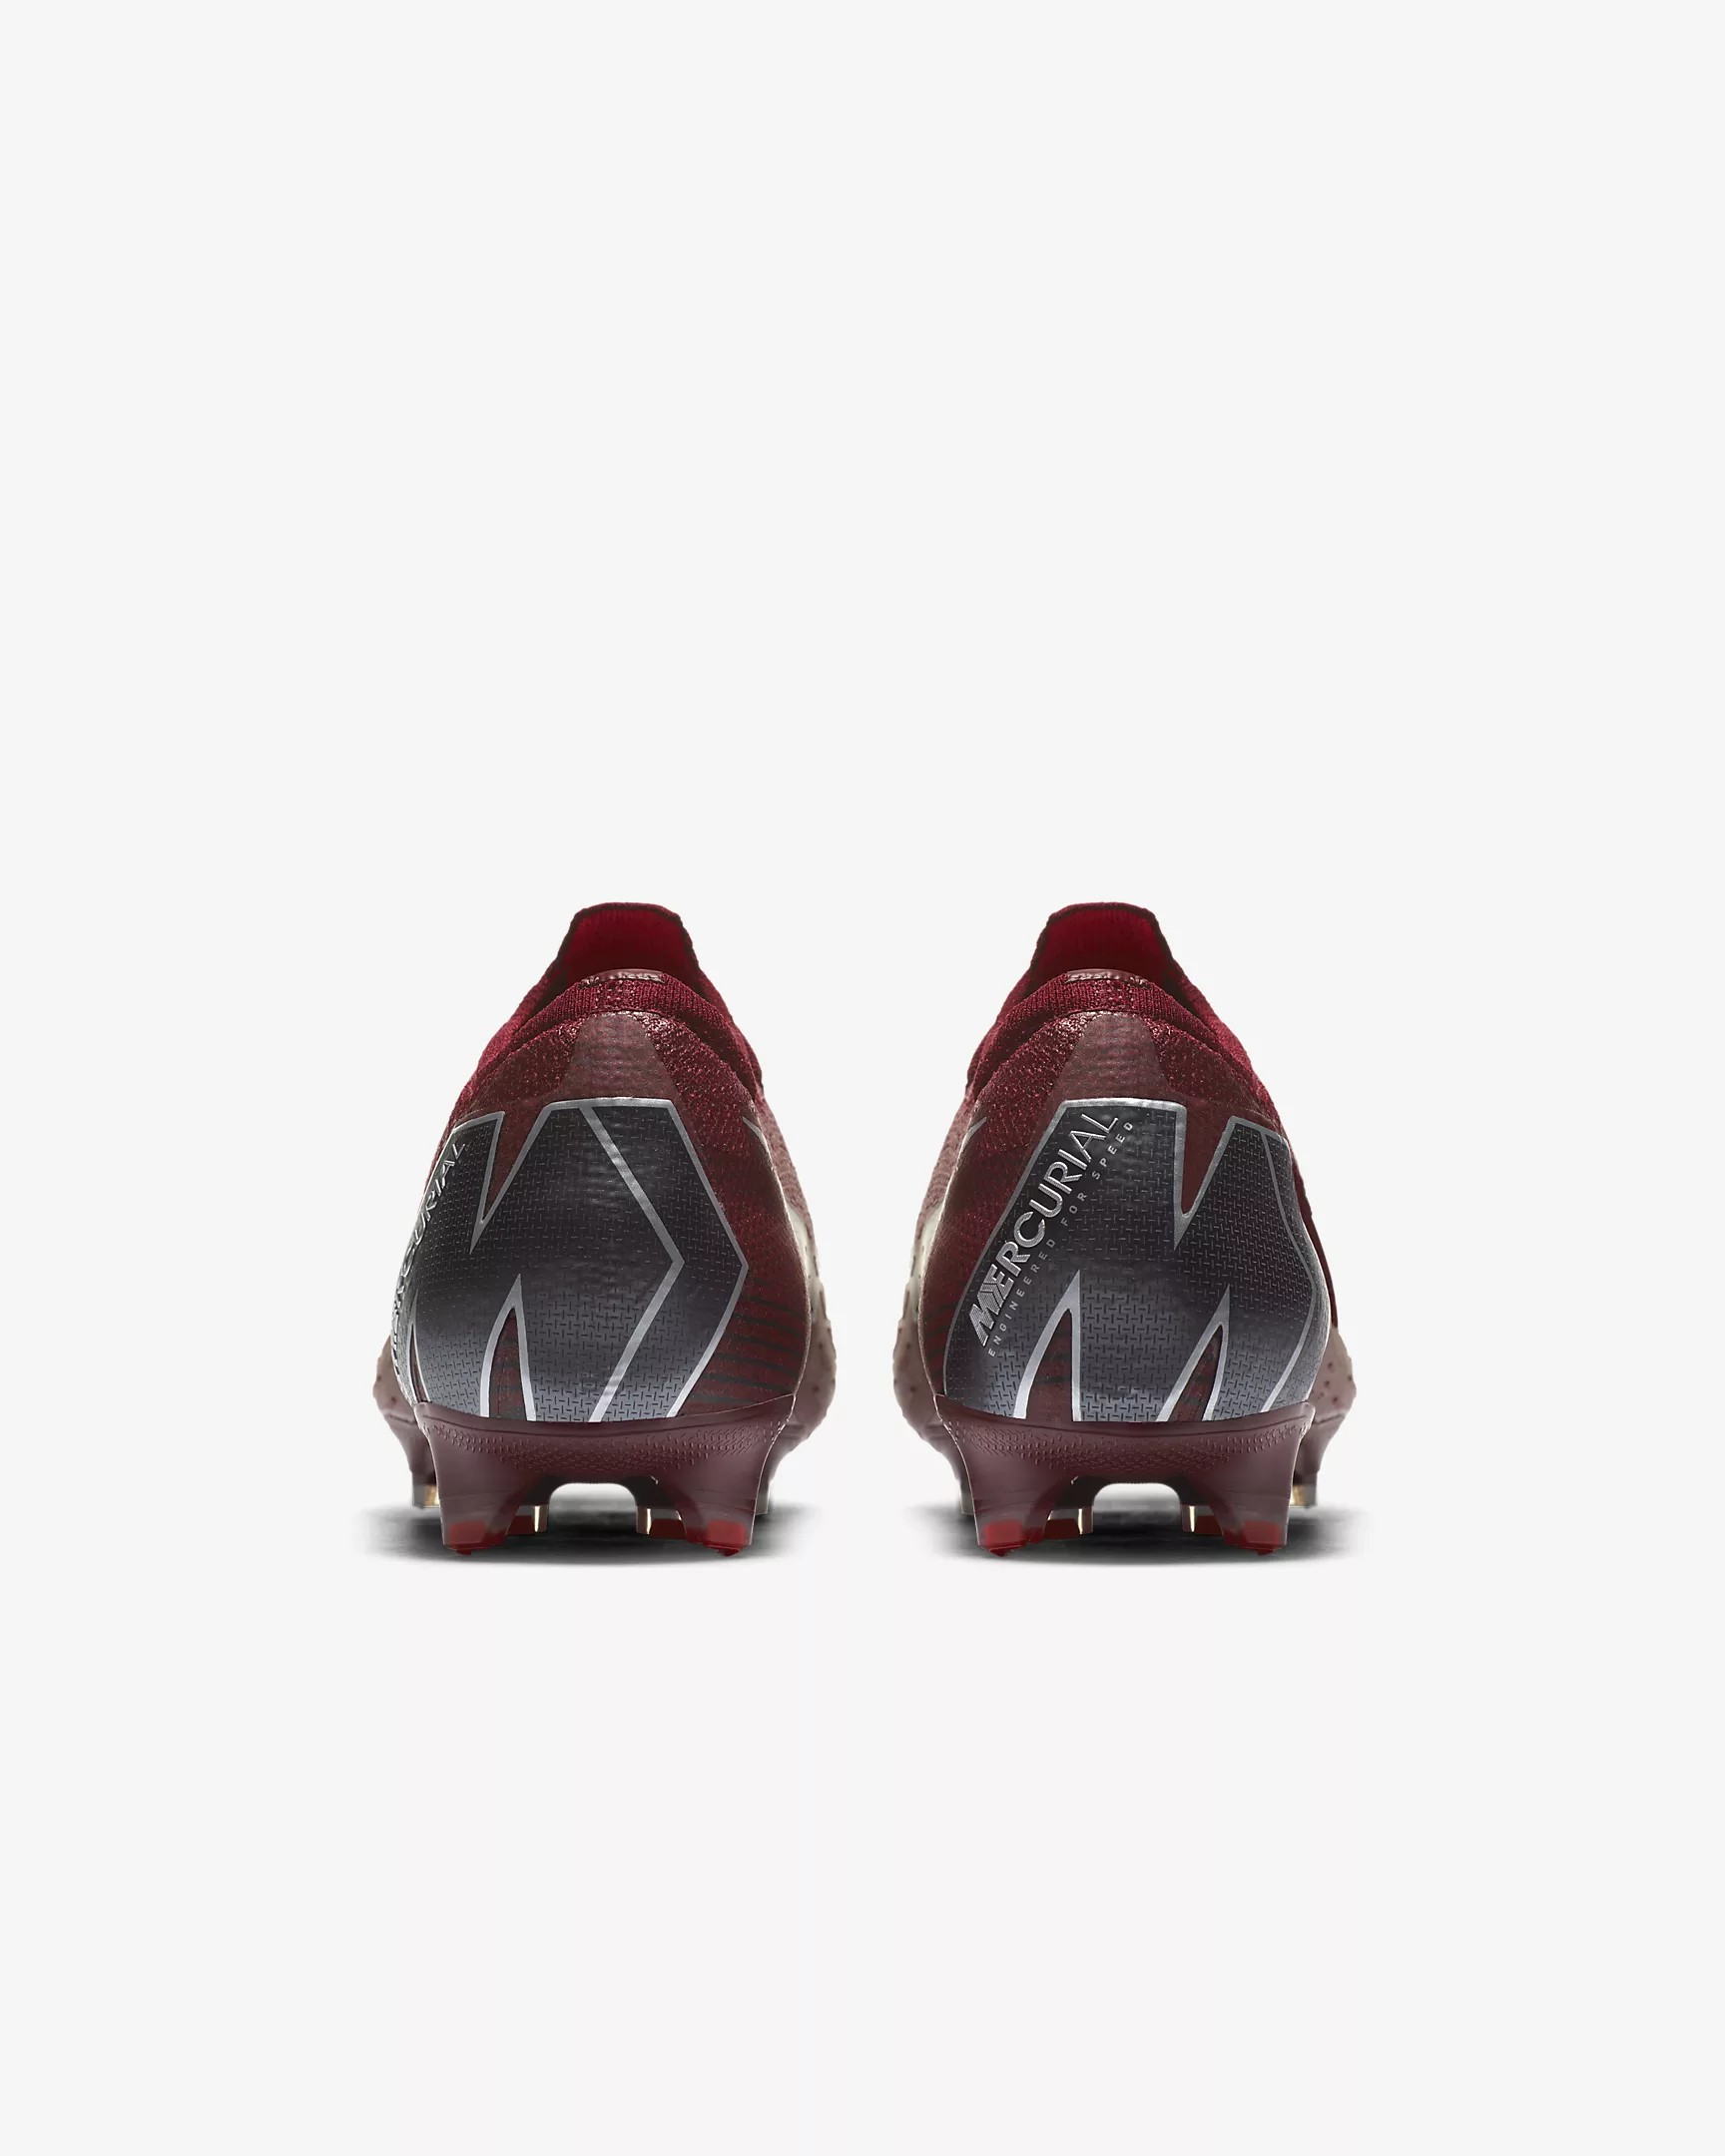 7804d4b756b ... Click to enlarge image  nike mercurial vapor 360 elite fg rising fire team red bright crimson metallic dark grey df.jpg  ...